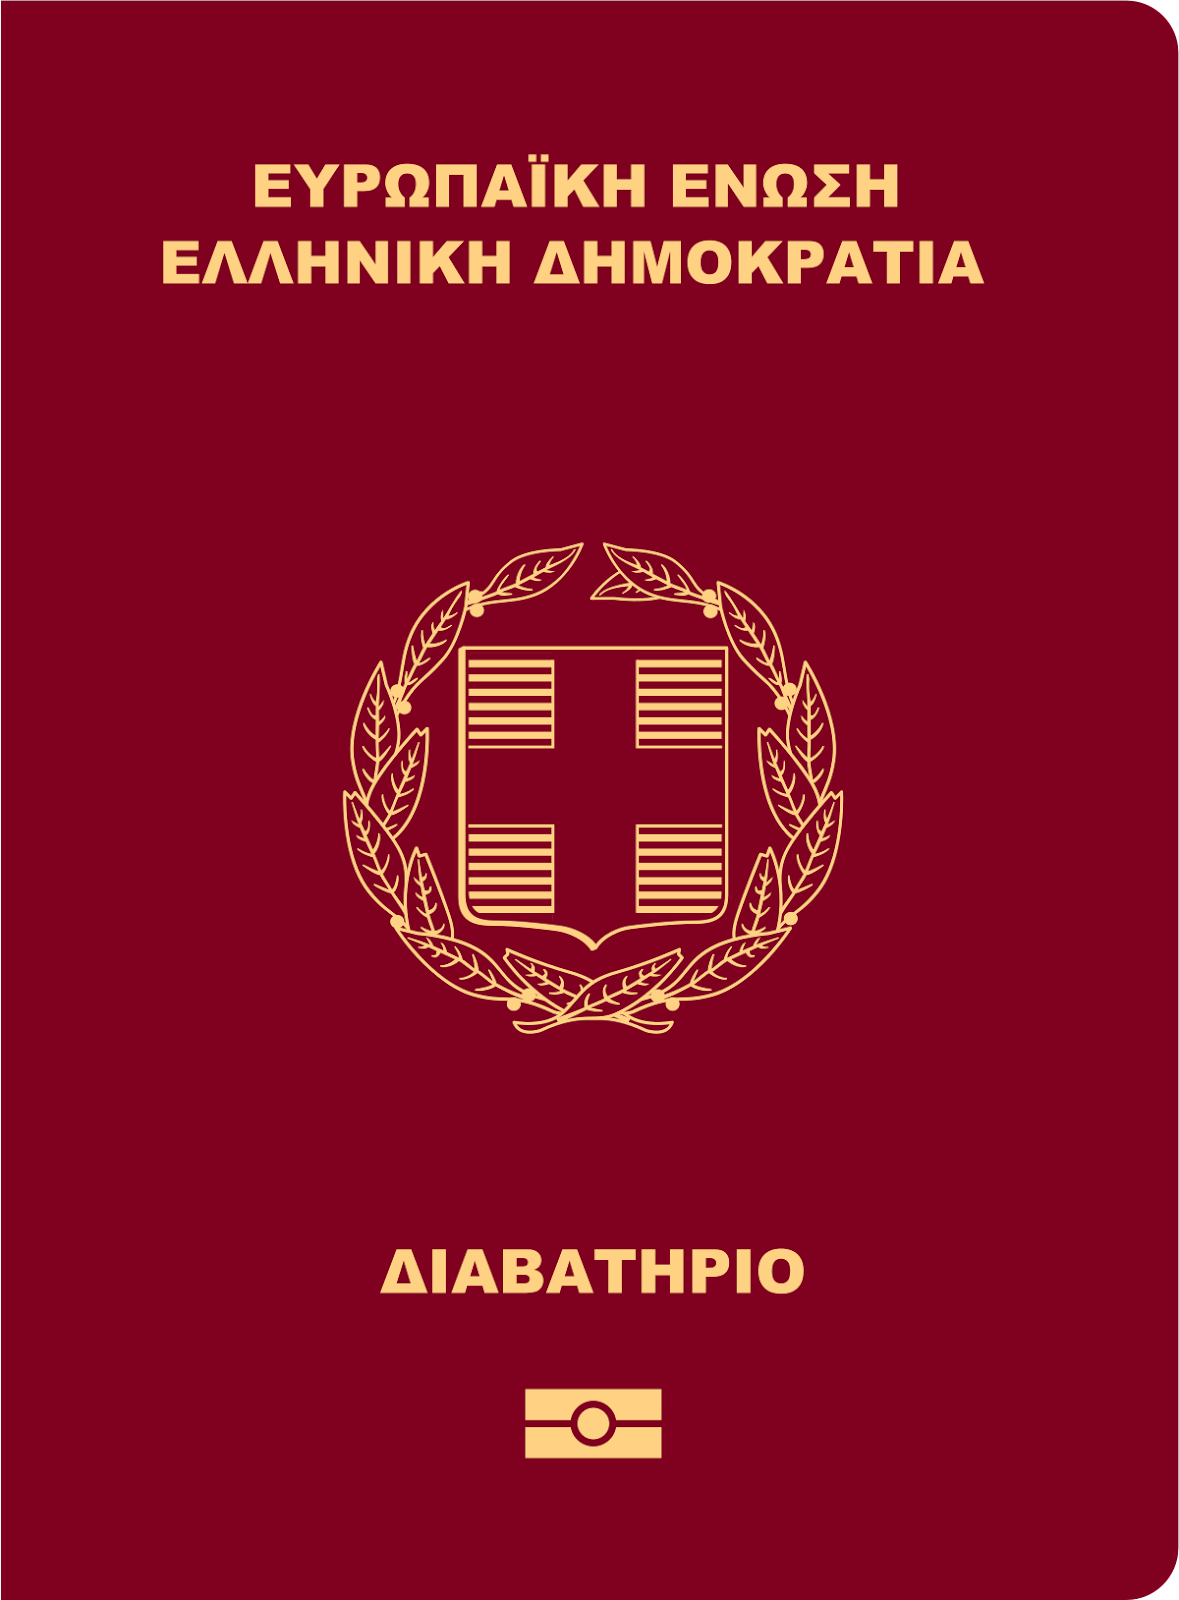 Greek passport cover